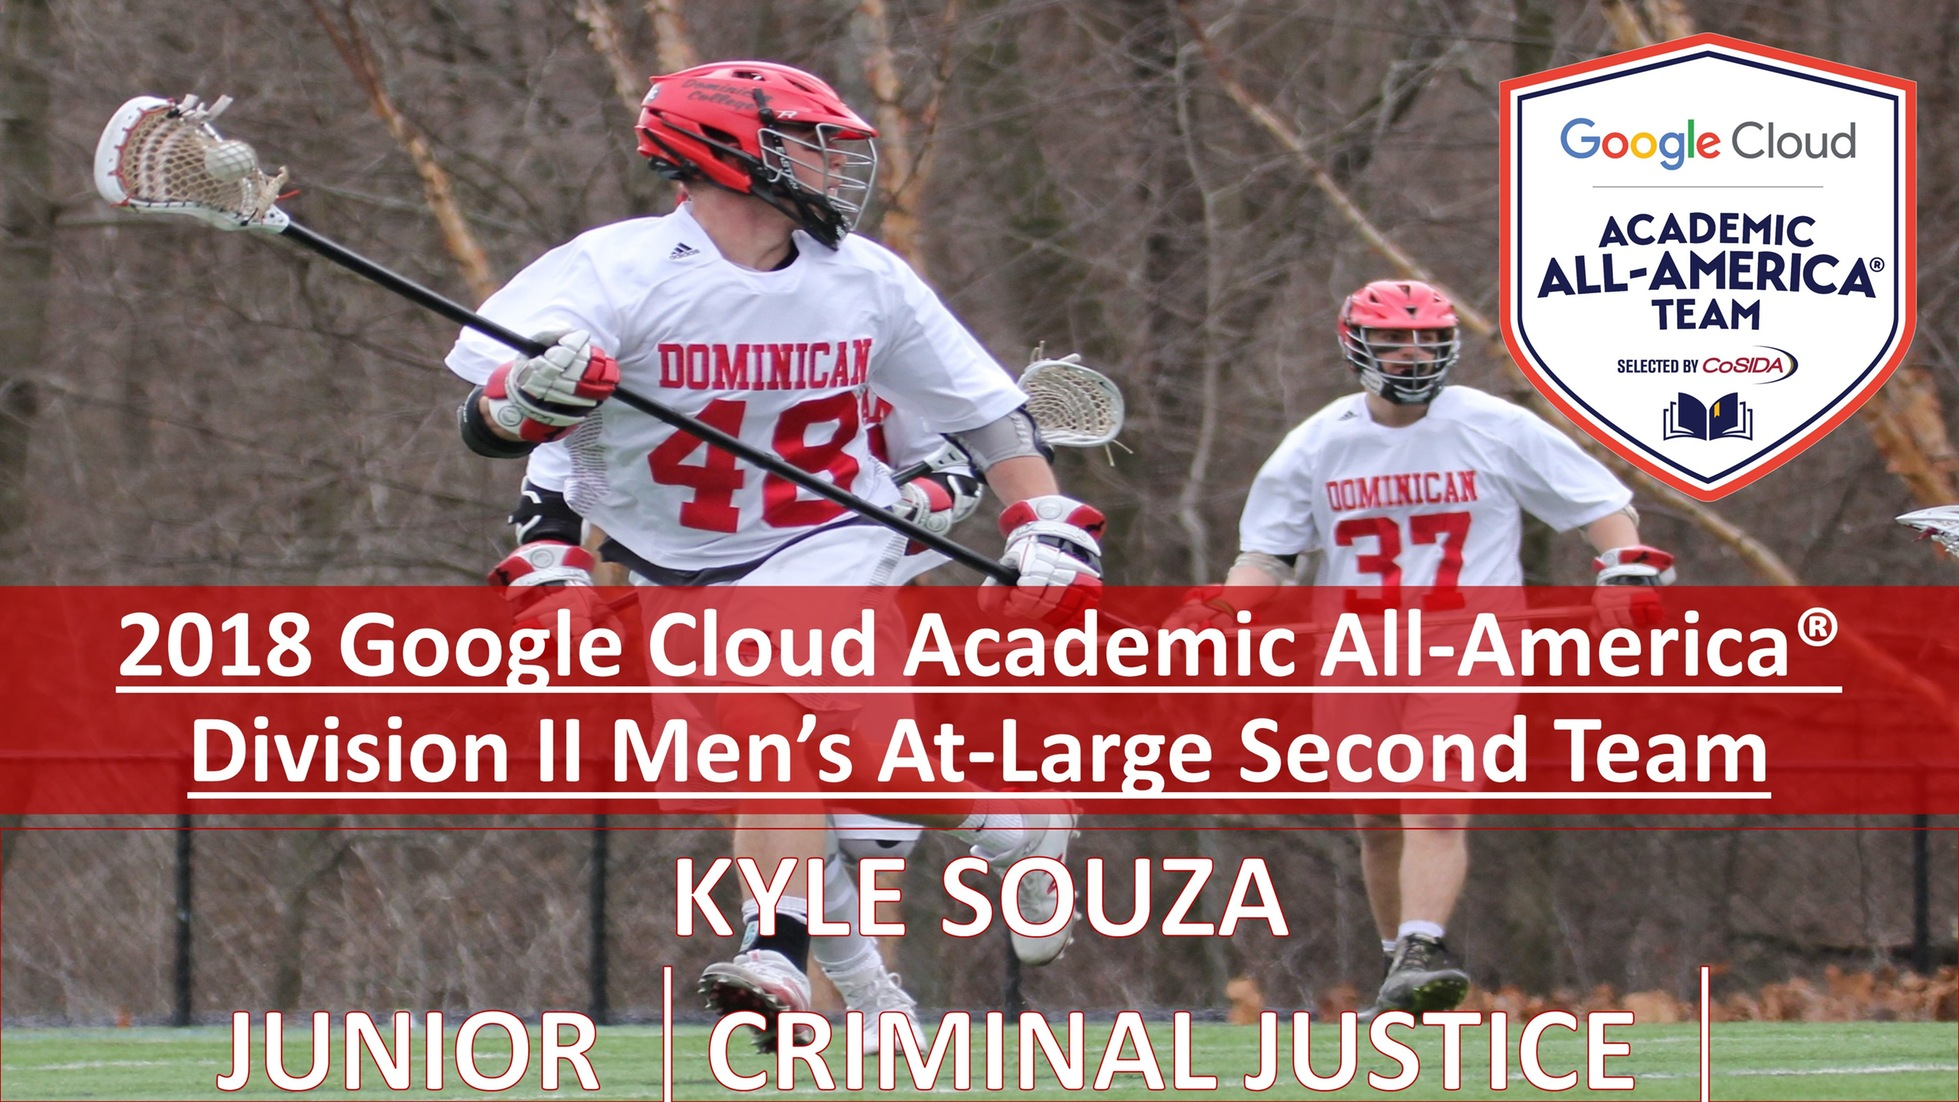 DC men's lacrosse player, Kyle Souza, has been named to the 2018 Google Cloud Academic All-America� Division II Men's At-Large Second Team